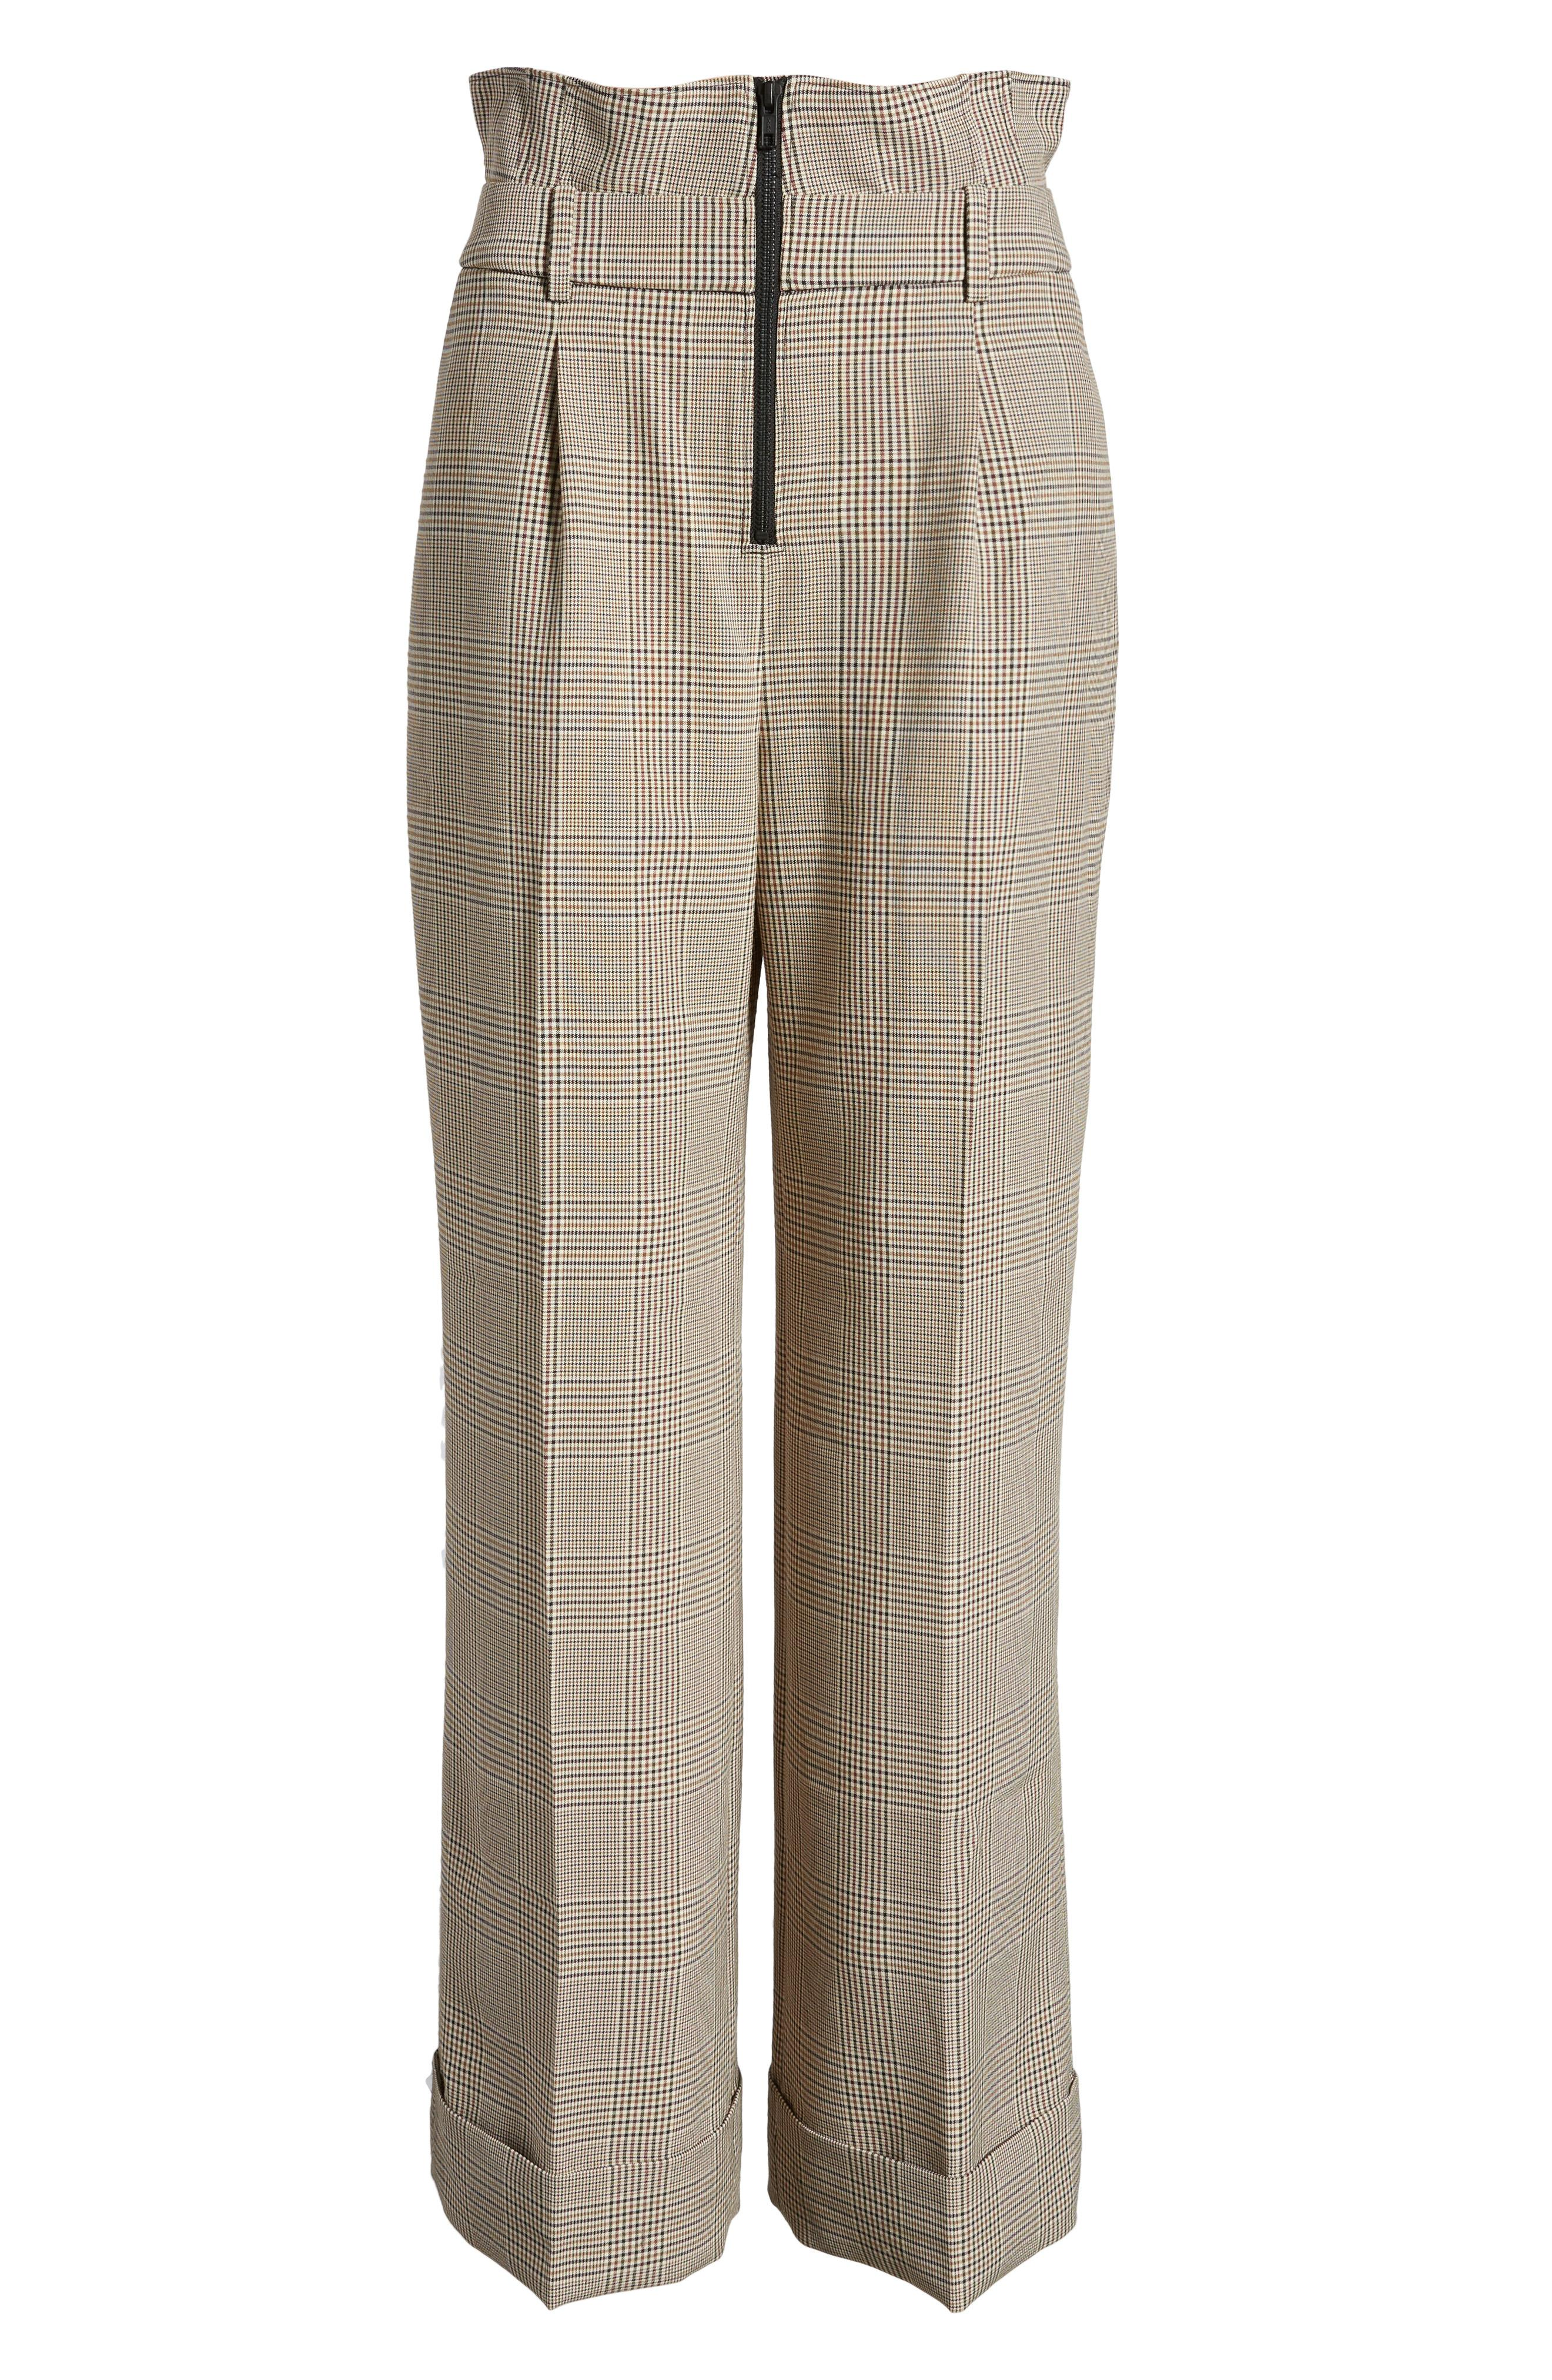 Trouve Trousers -- Sale: $59.90 / After Sale: $89{ }(Image: Courtesy Nordstrom)